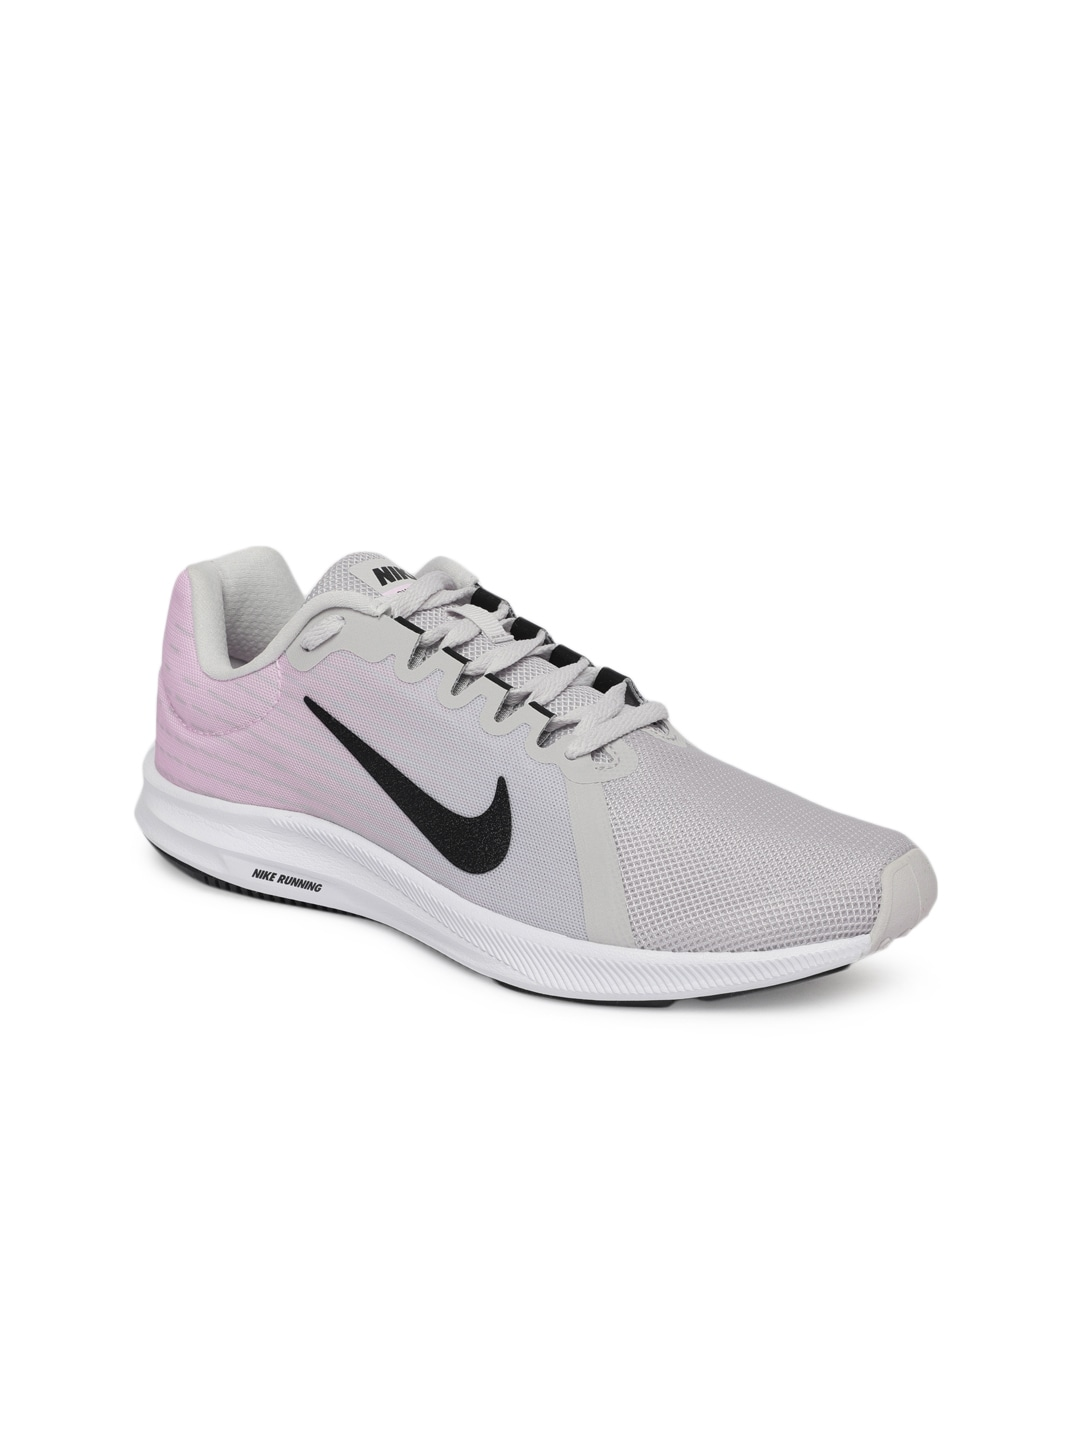 a4b00a1bd03f Nike Sport Shoe - Buy Nike Sport Shoes At Best Price Online